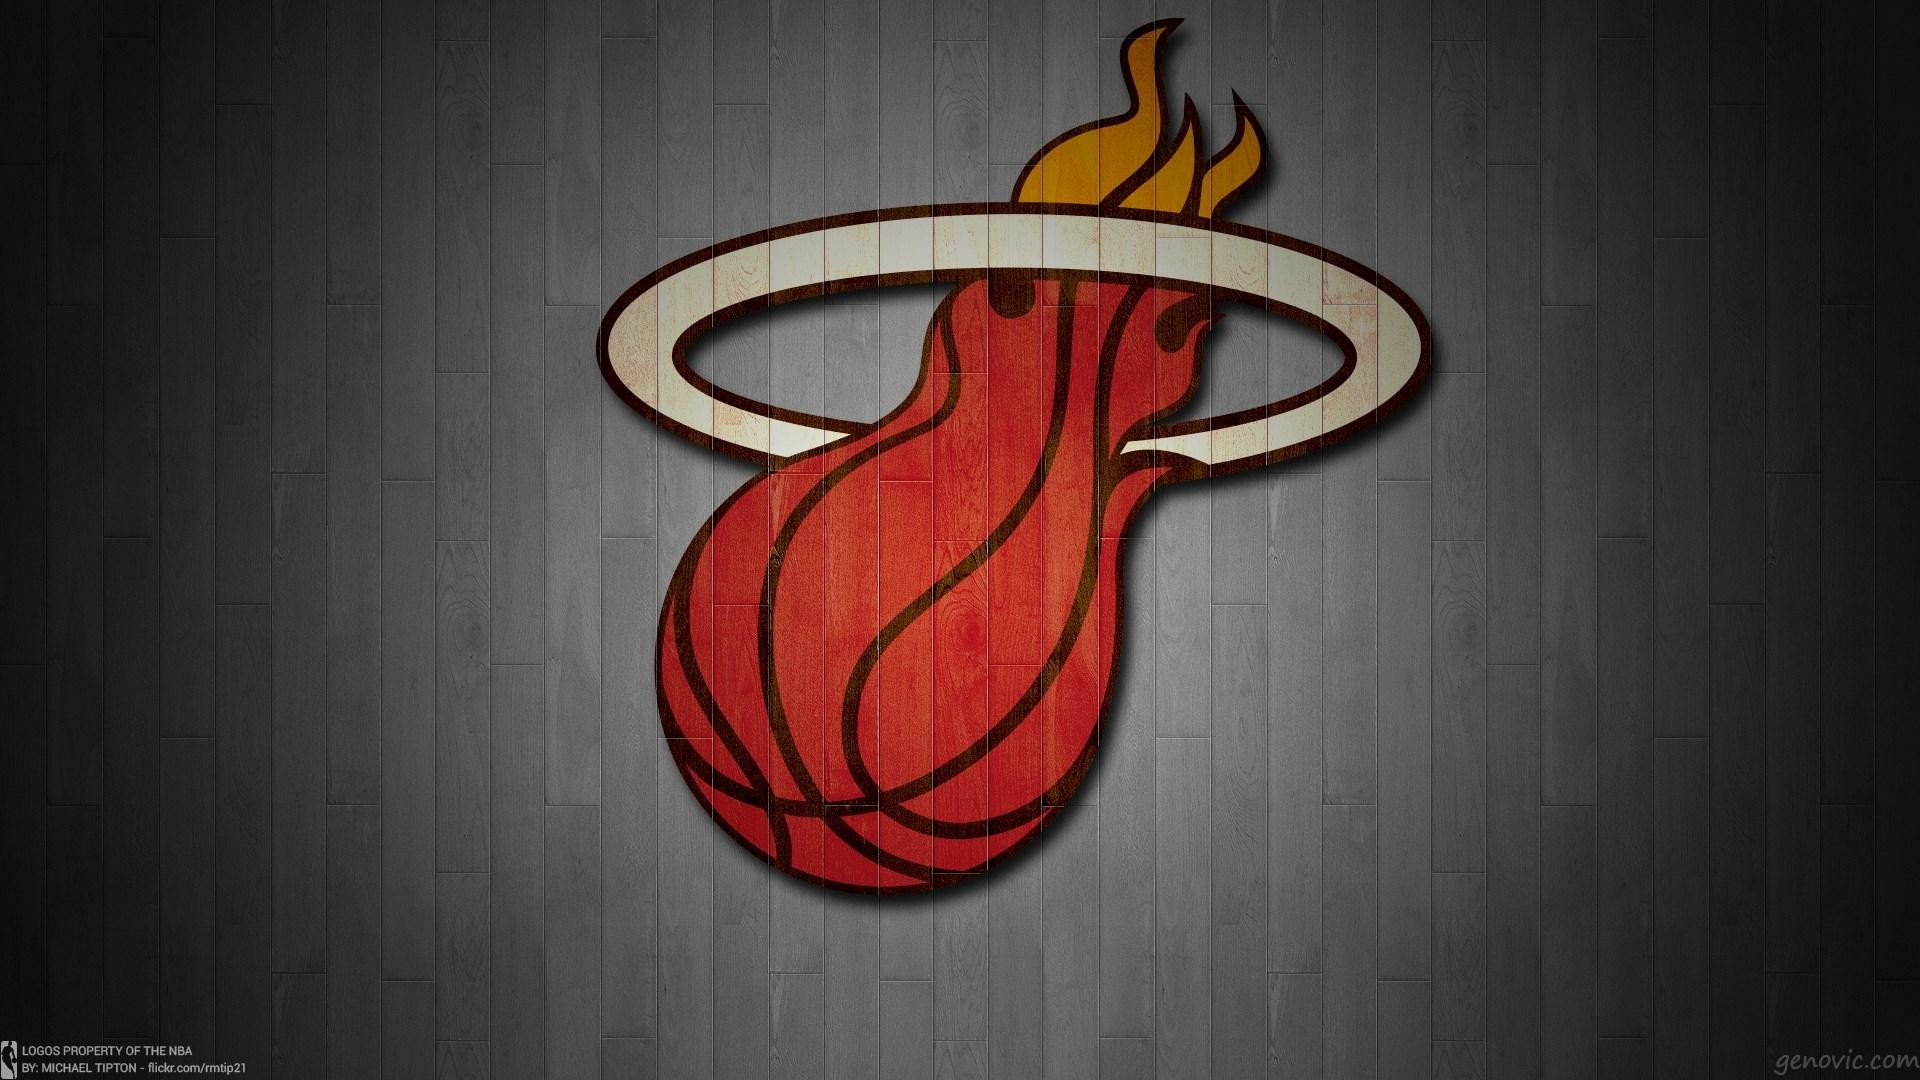 Miami Heat Wallpaper Hd 72 Images